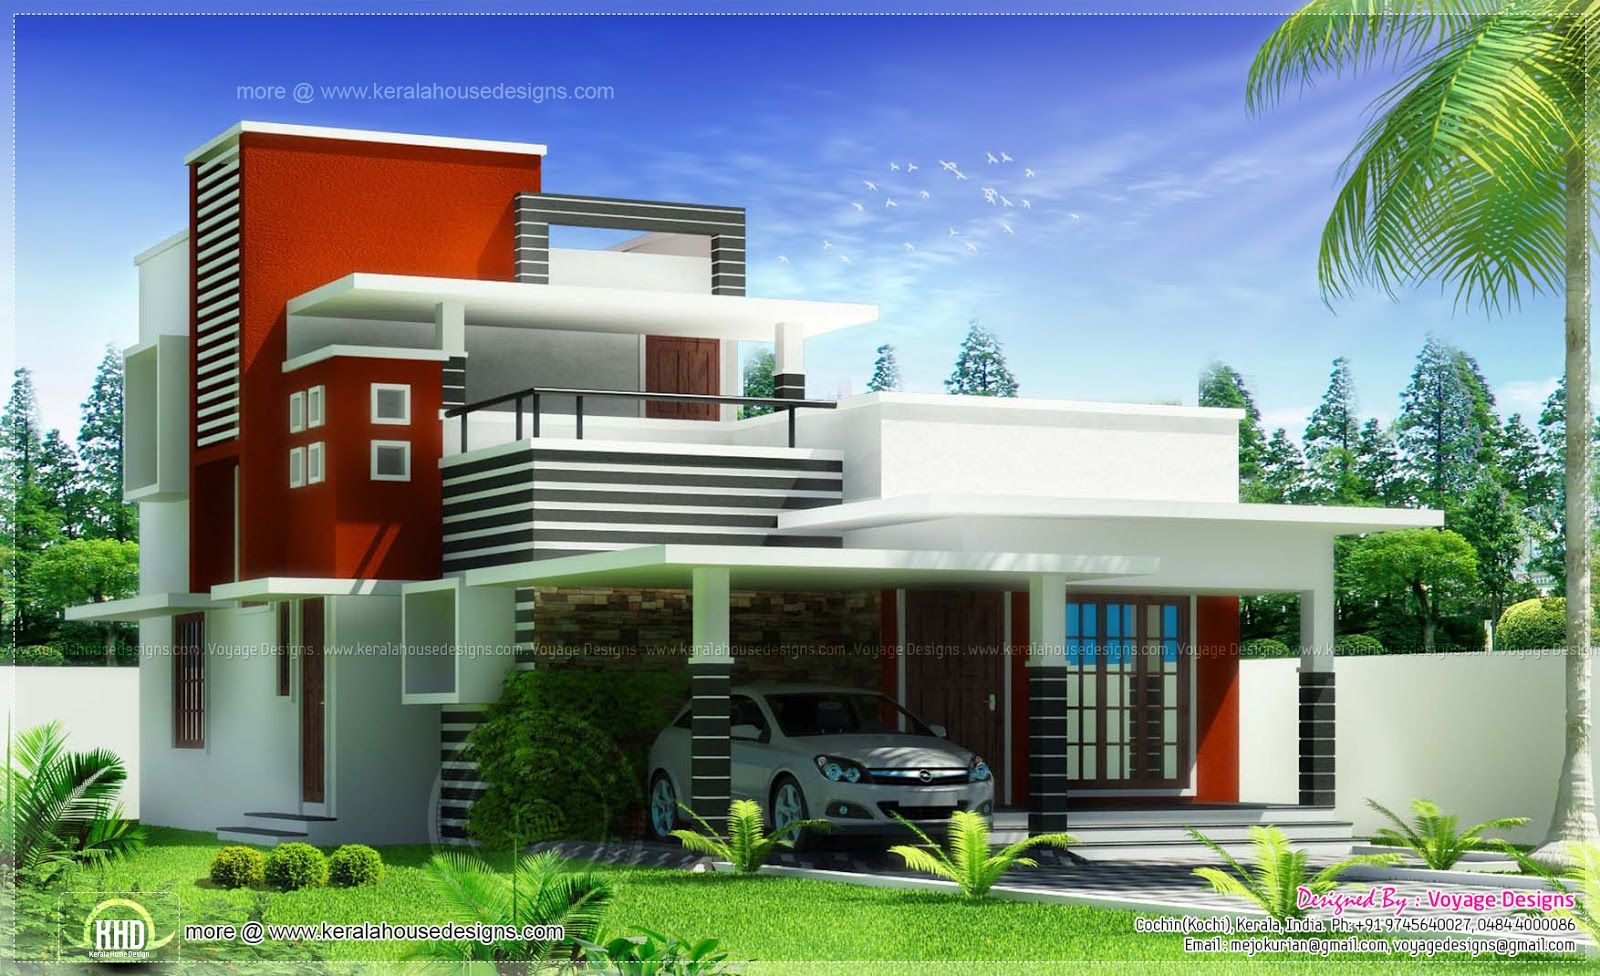 Kerala house designs architecture pinterest kerala for Villa architecture design plans